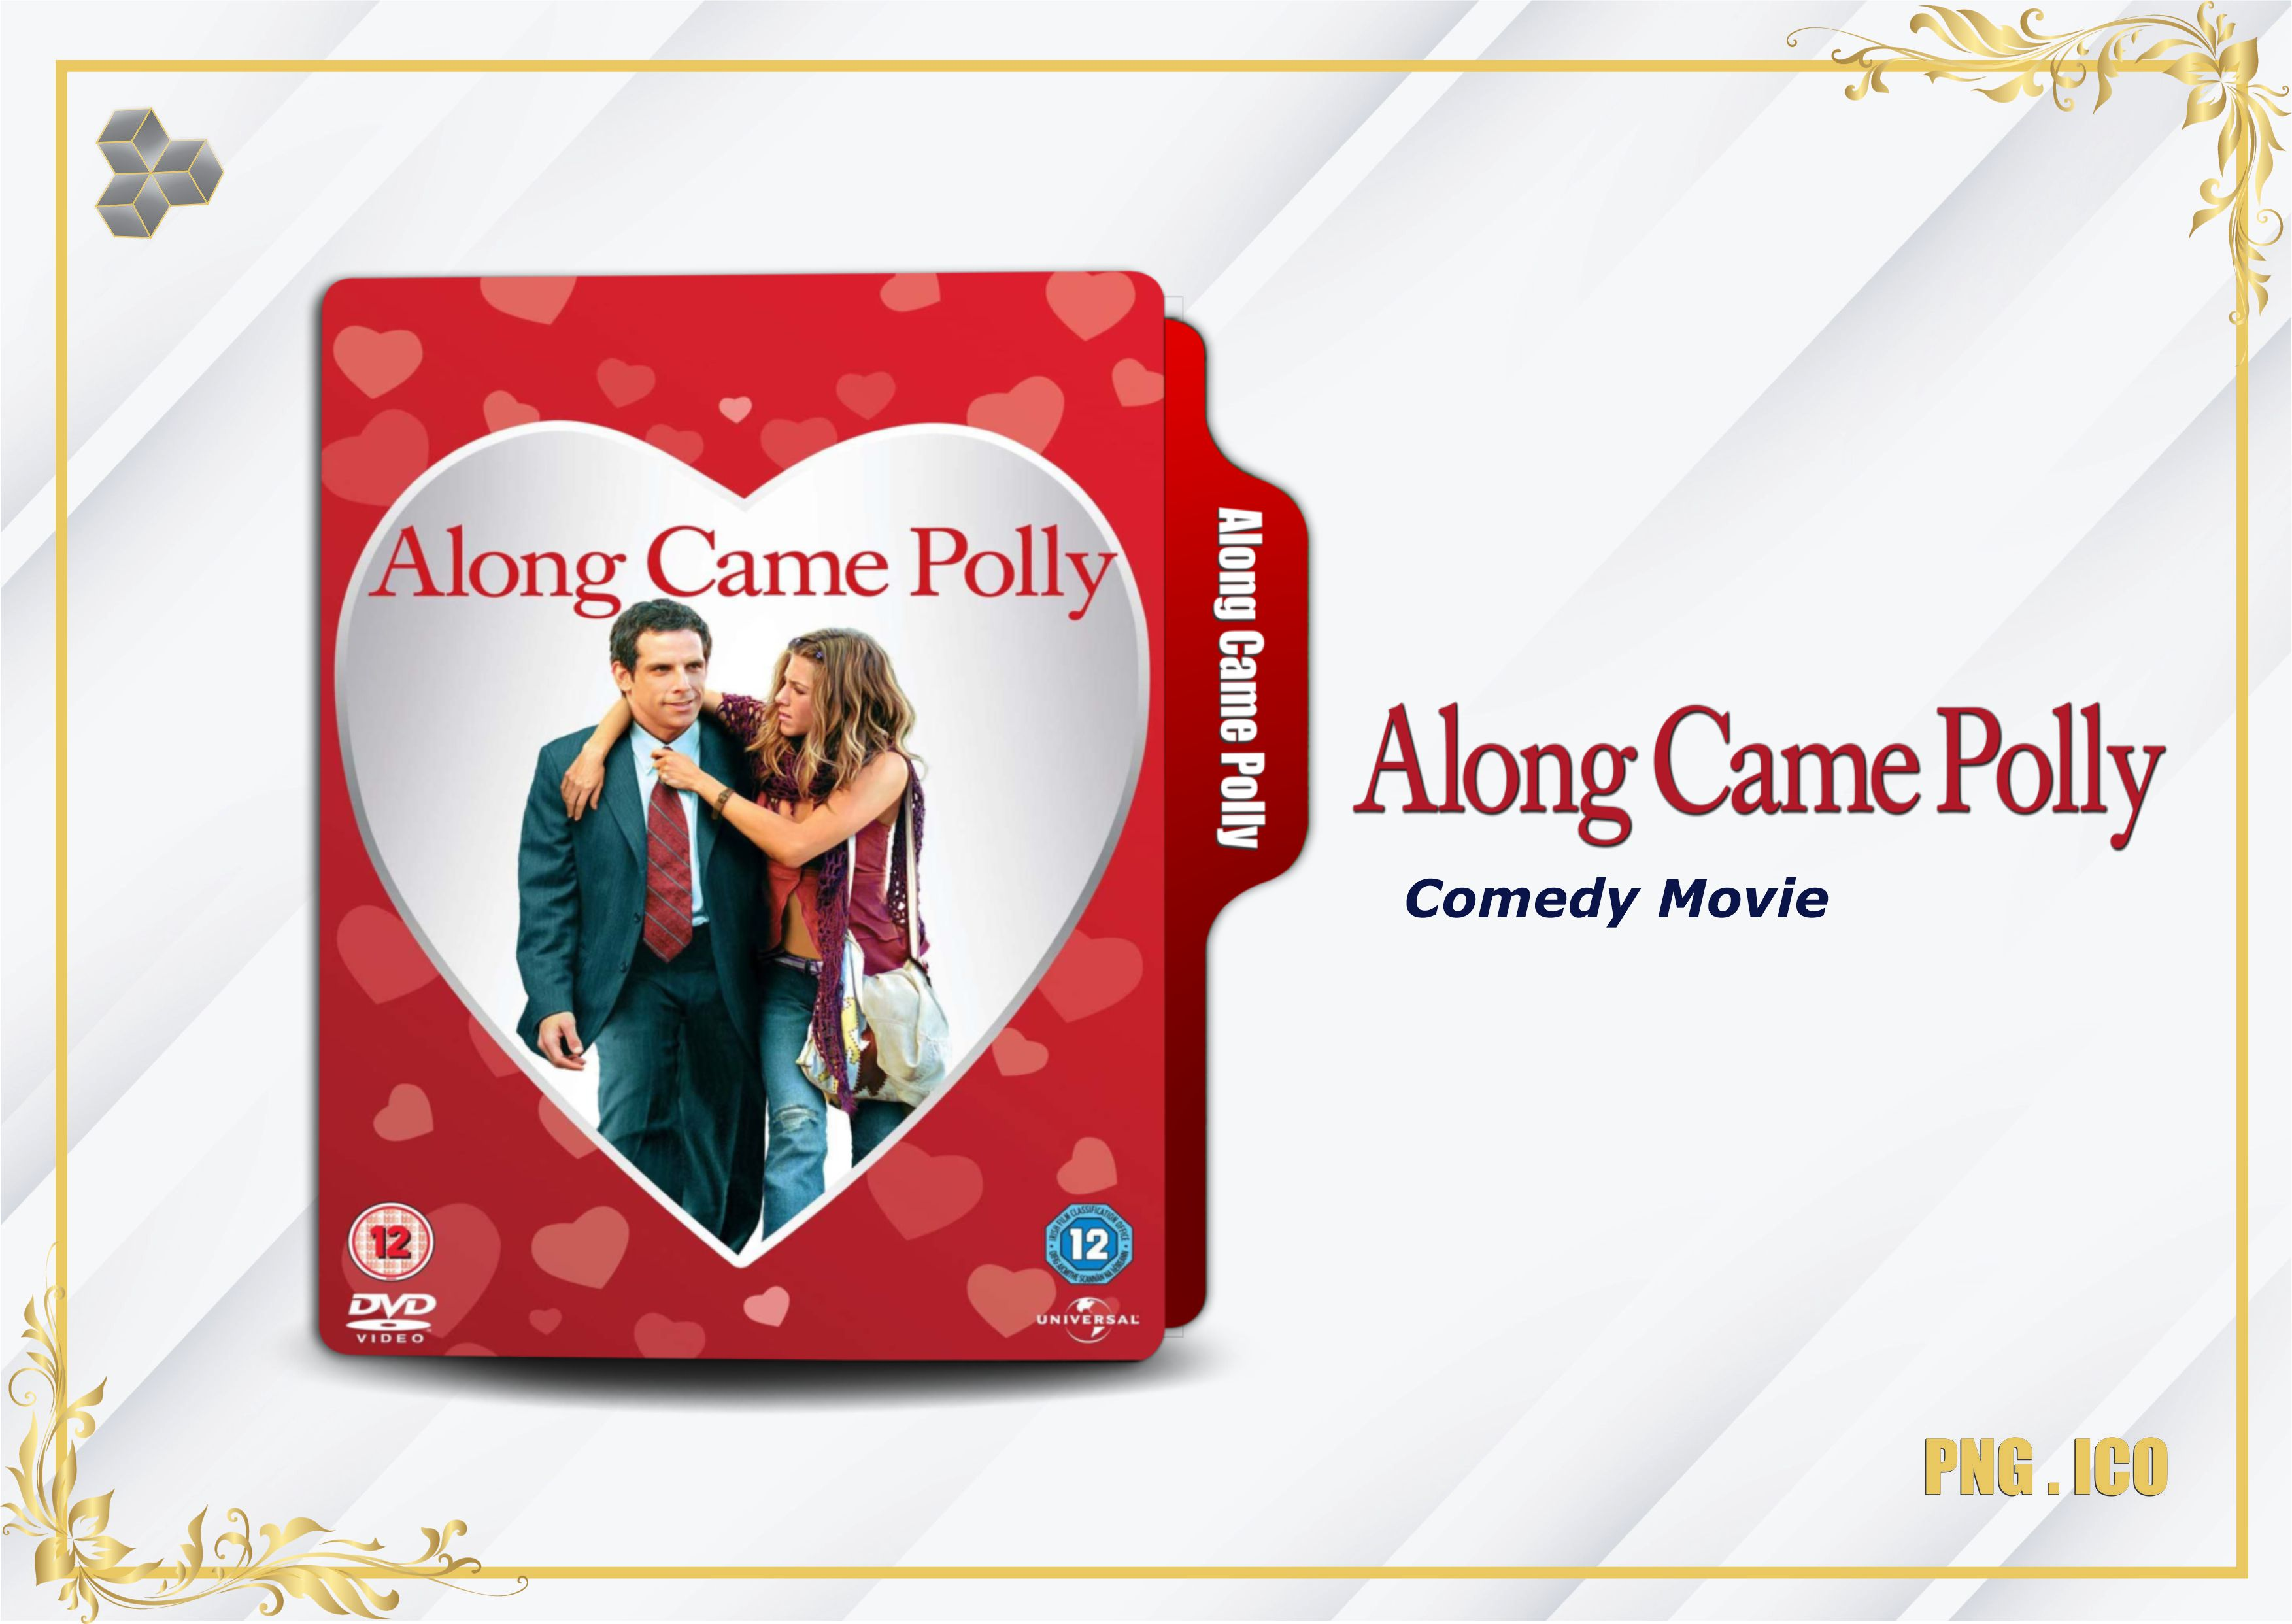 Along Came Polly 2004 Folder Icon By Mosayebsh On Deviantart